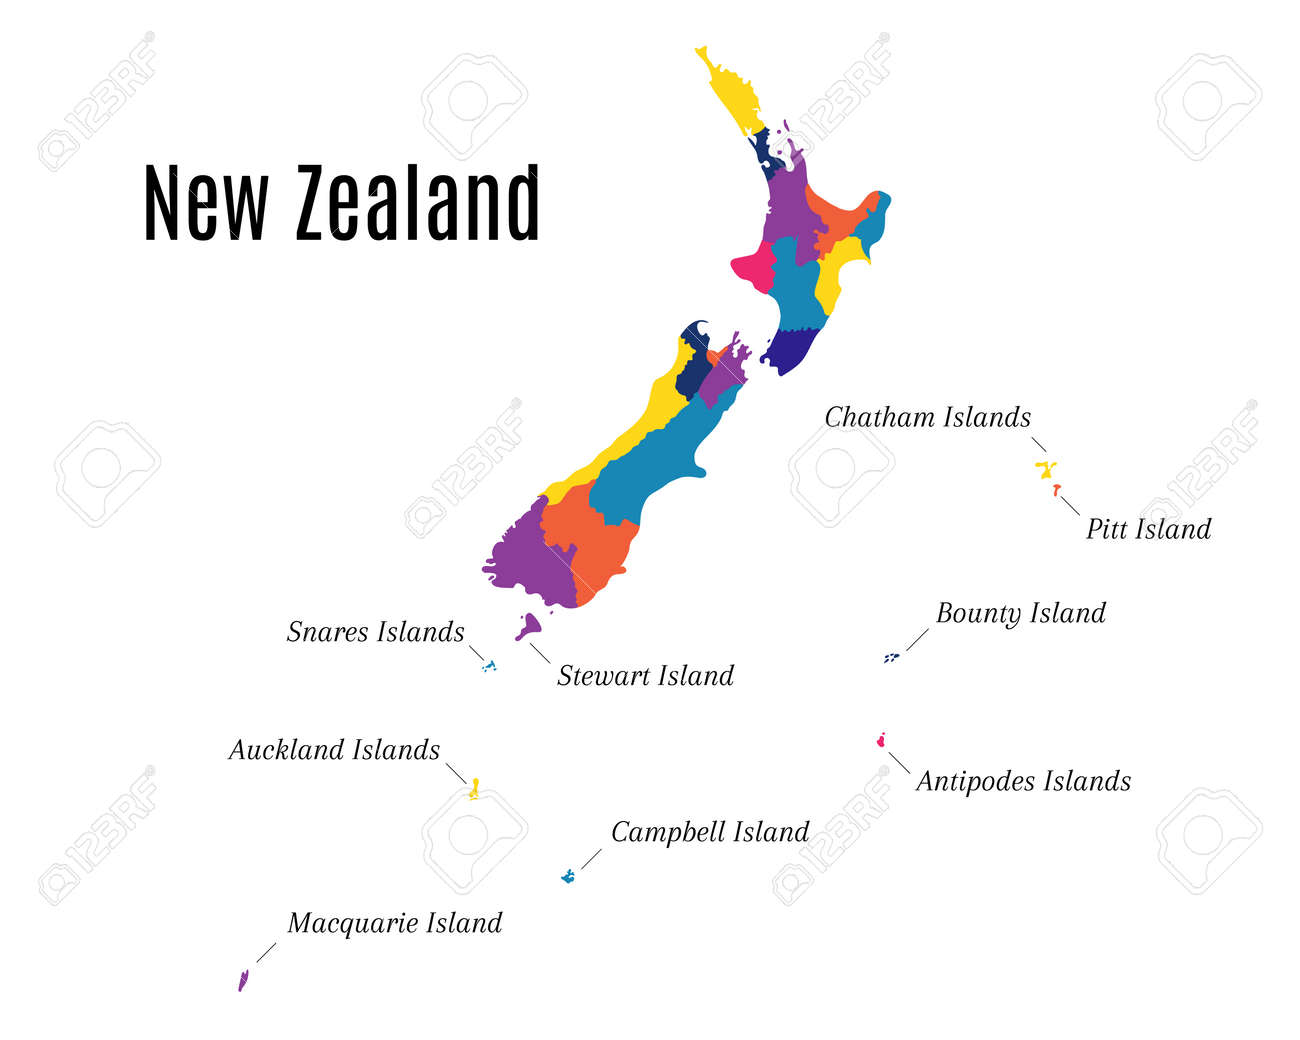 New Zealand Maori Map.Geographical Map On The New Zealand And Its Islands State Also